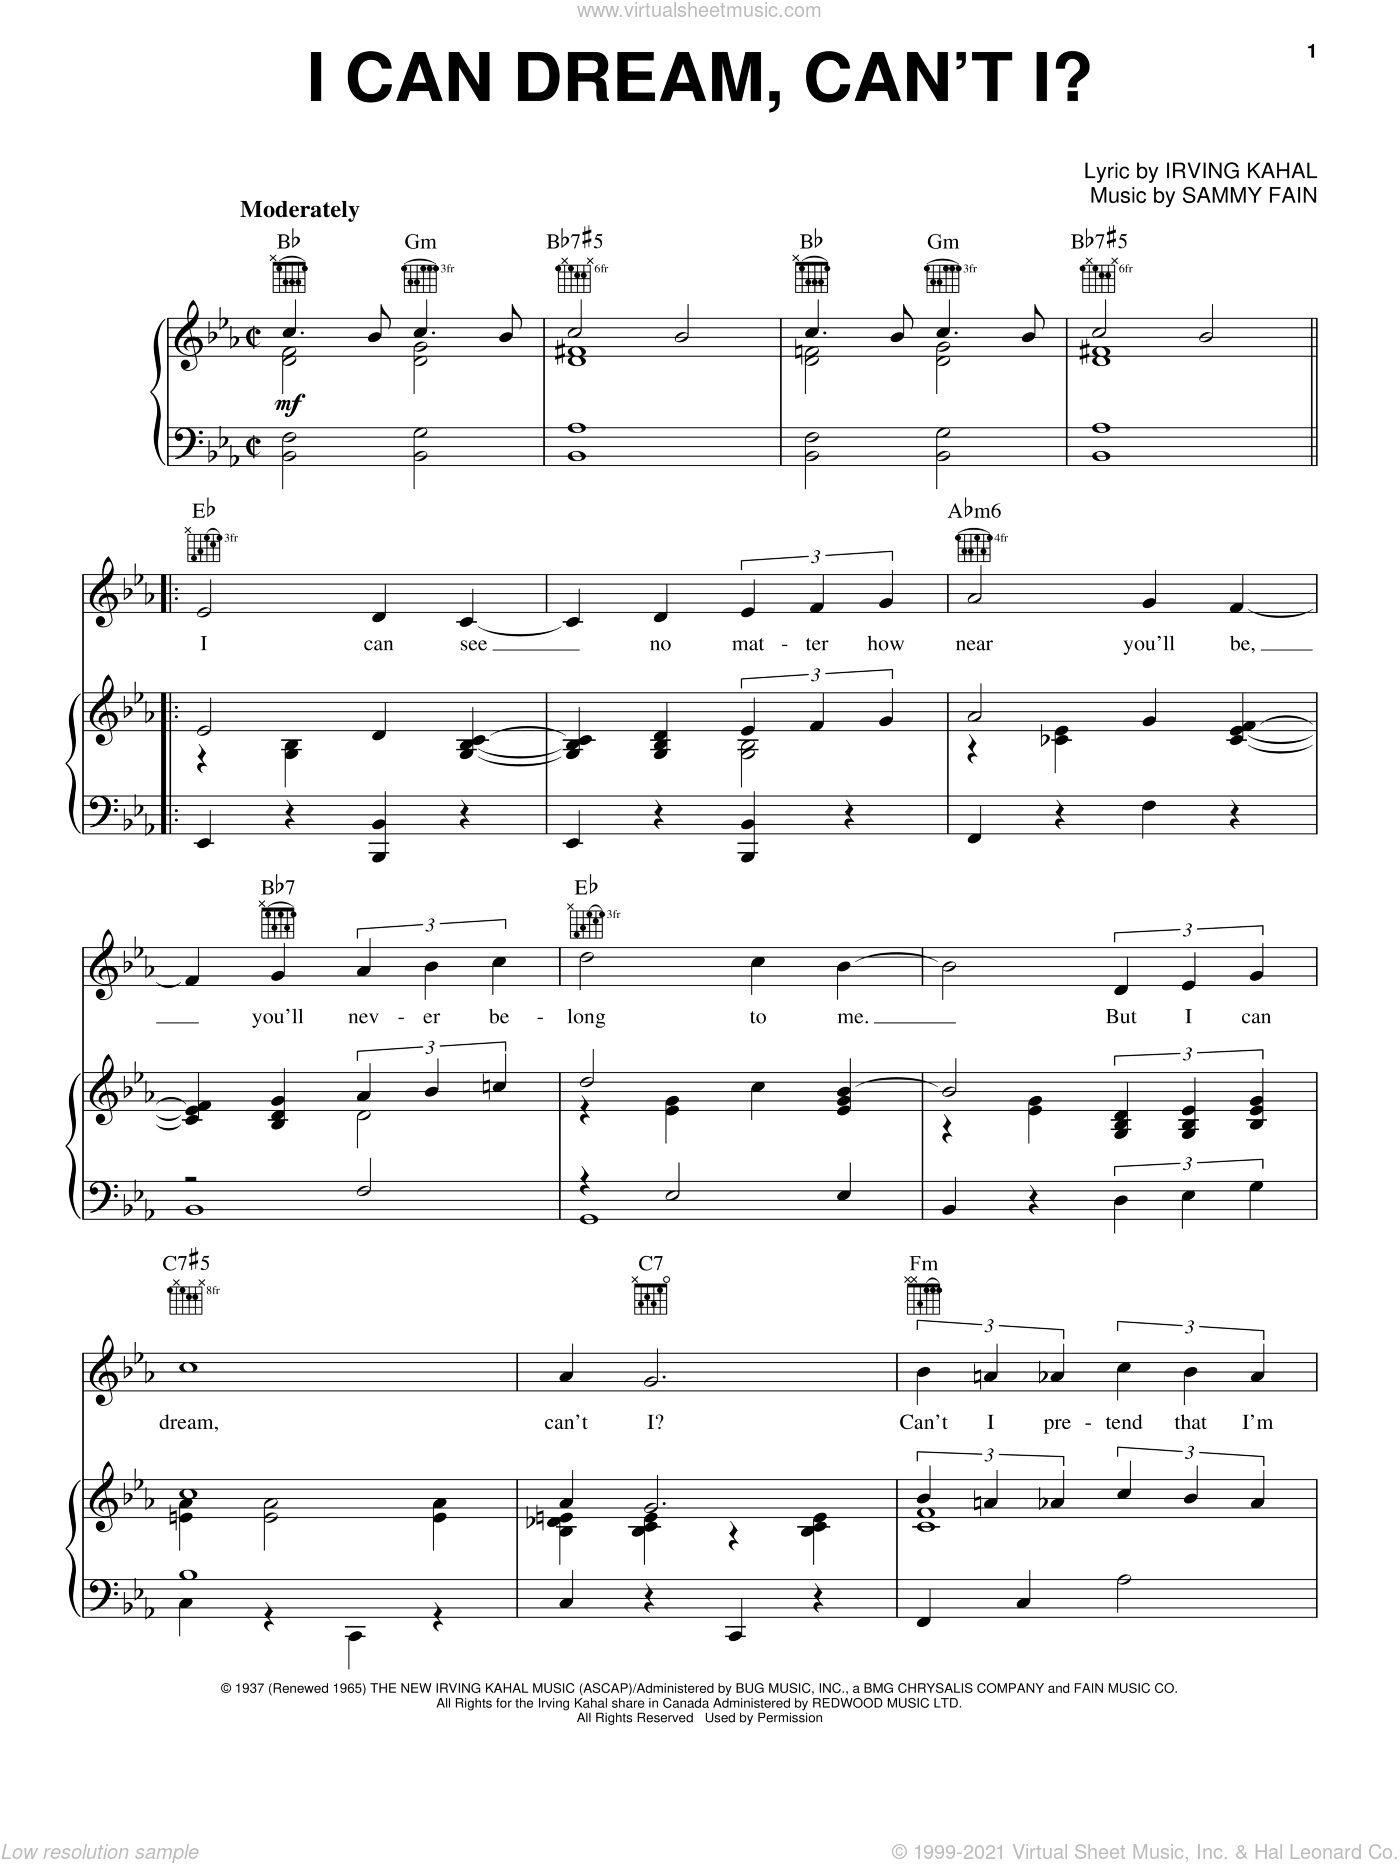 I Can Dream, Can't I? sheet music for voice, piano or guitar by Andrews Sisters, Bing Crosby, Irving Kahal and Sammy Fain, intermediate skill level